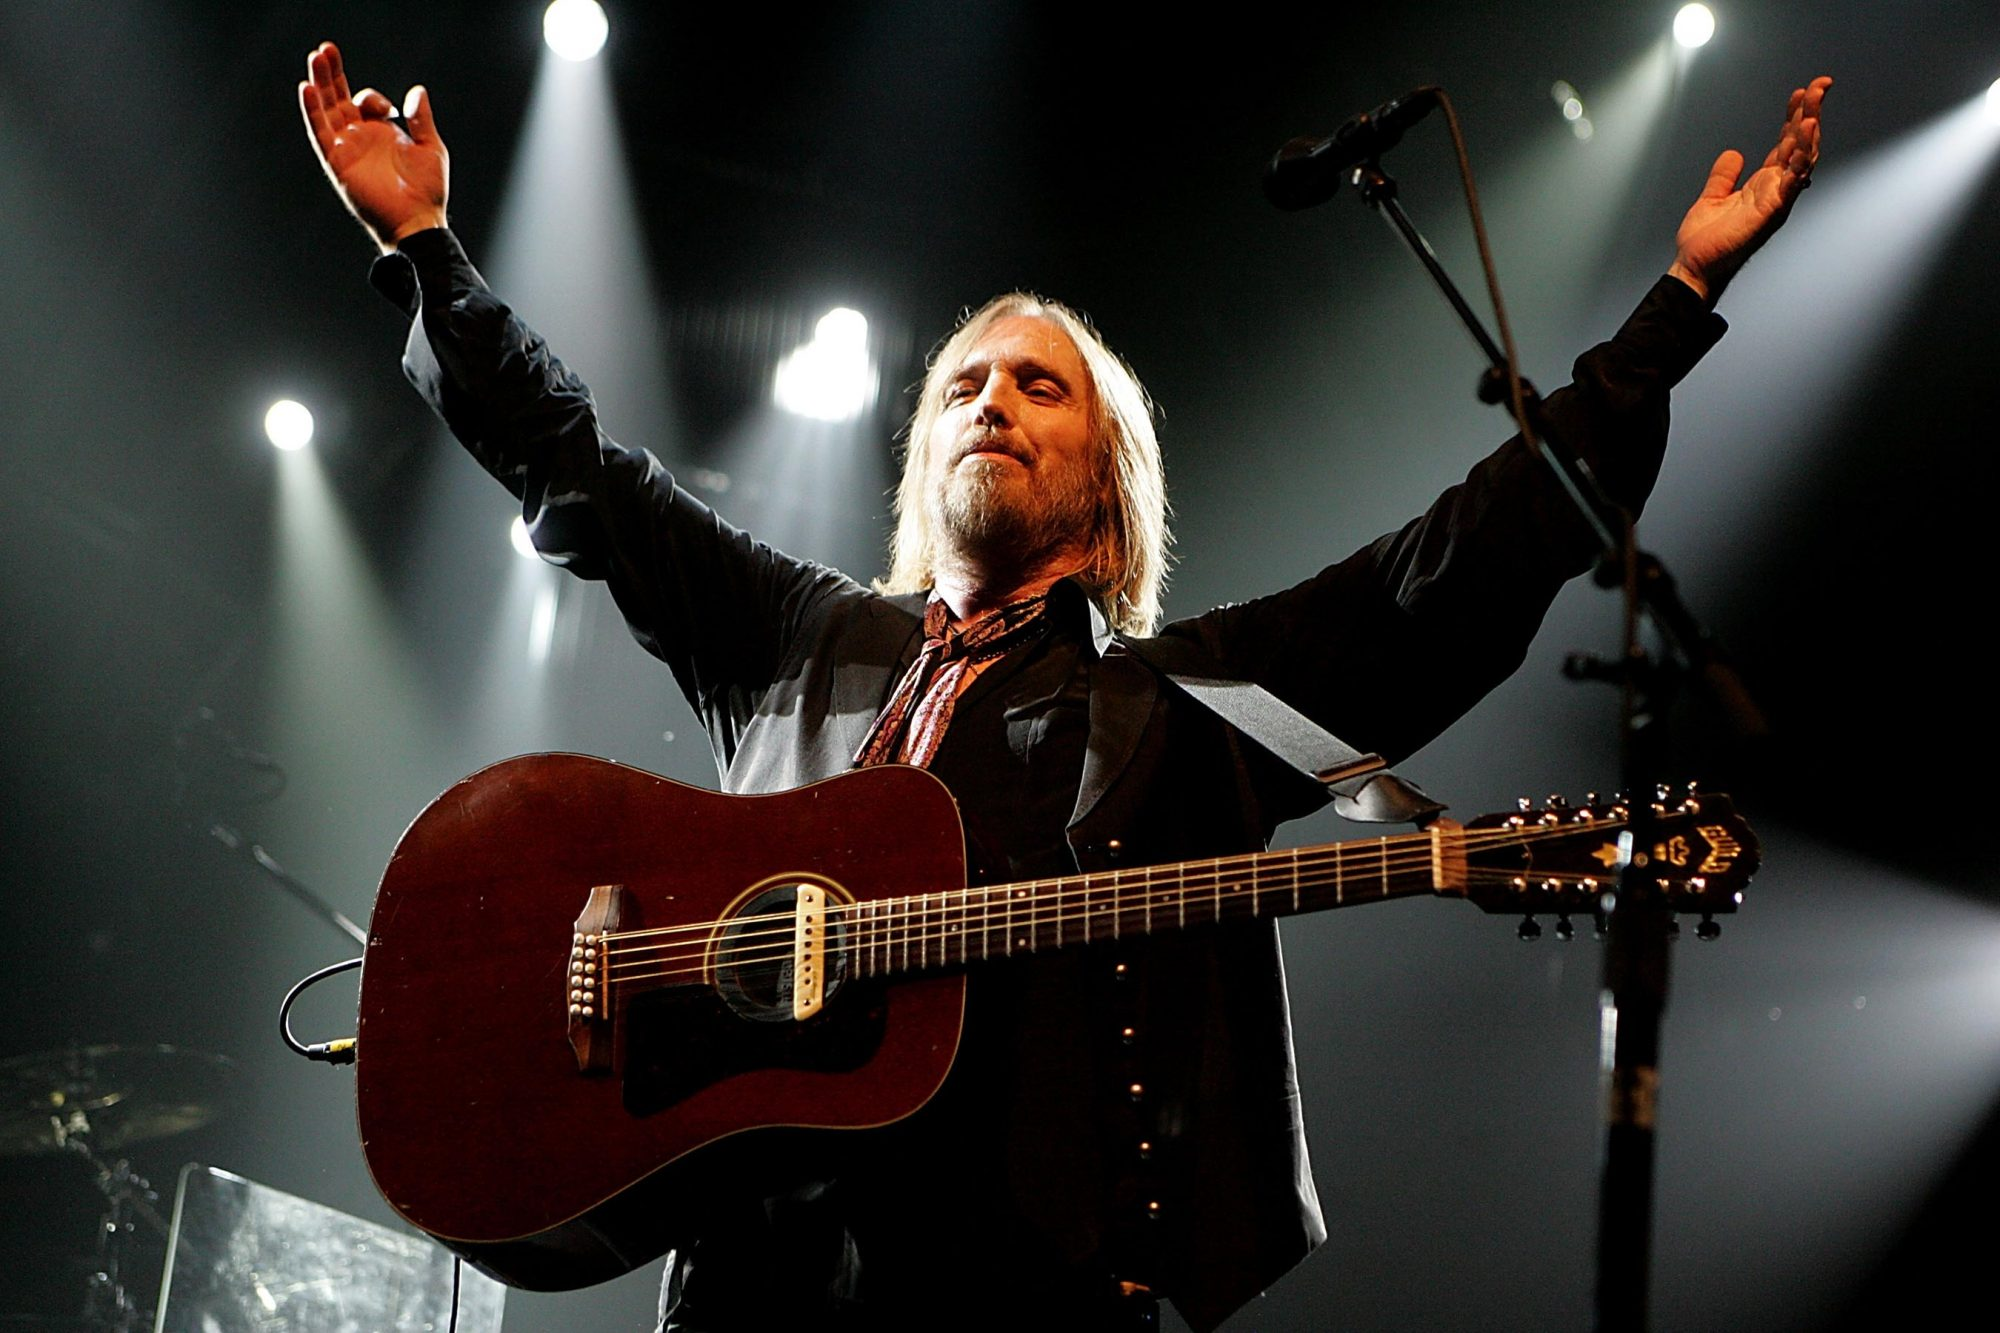 Tom Petty & The Heartbreakers And Steve Winwood In Concert At The Verizon Wireless Amphitheater - August 26, 2008